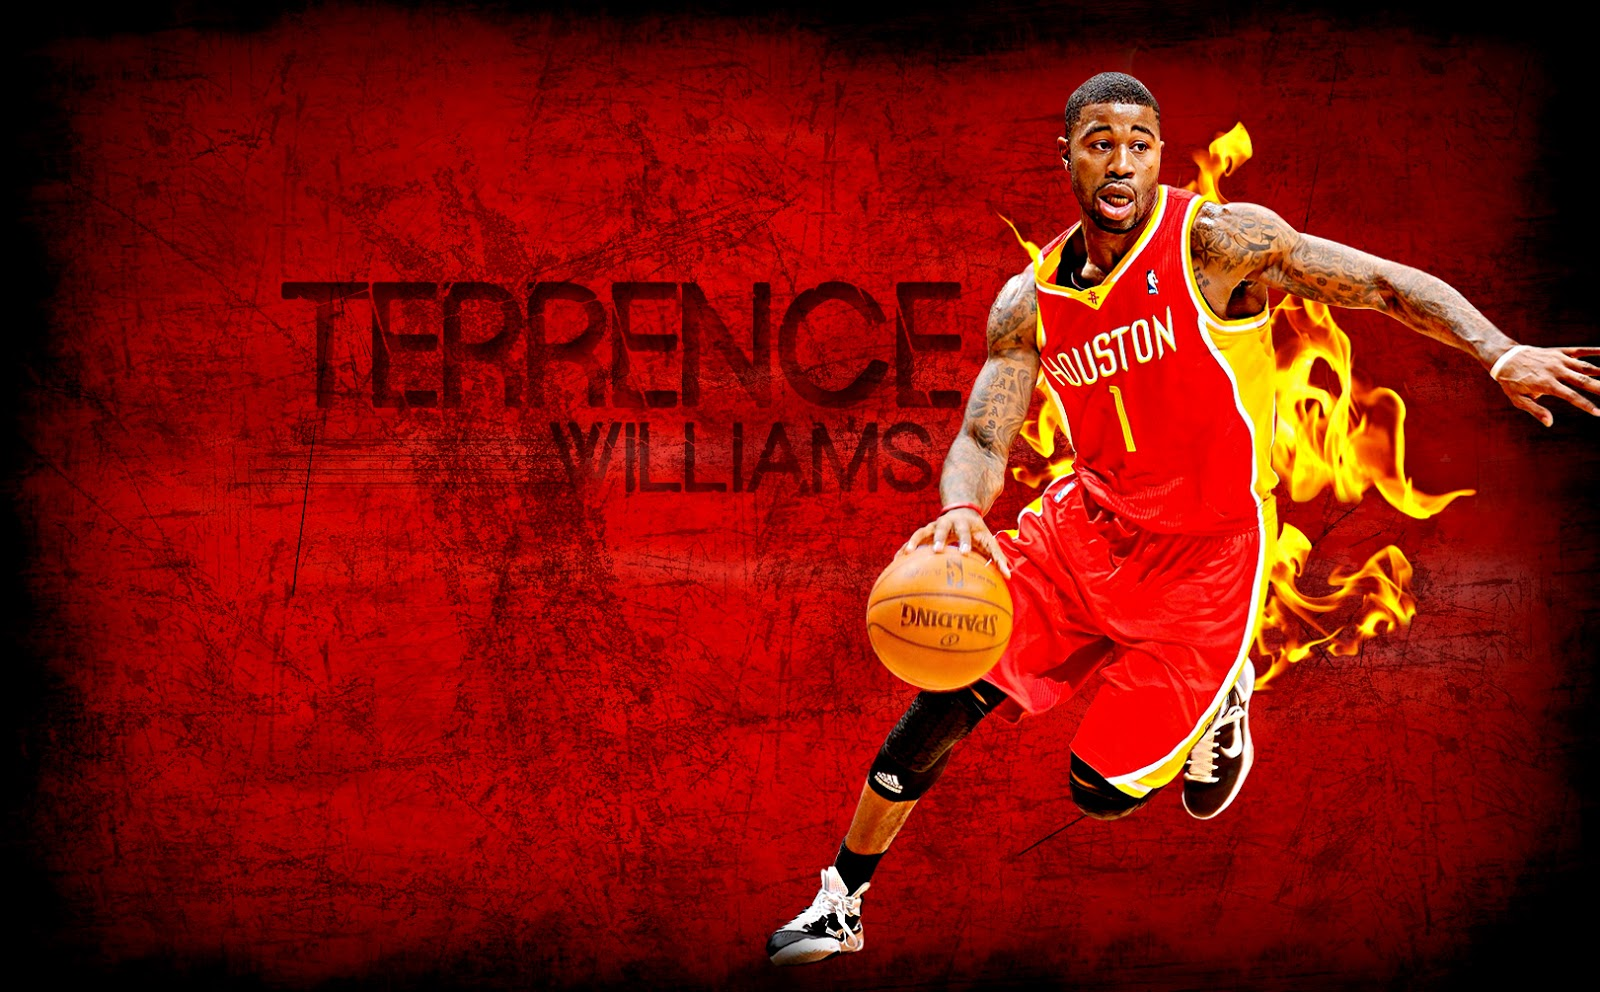 NBA Players Wallpapers (52 Wallpapers) – Adorable Wallpapers